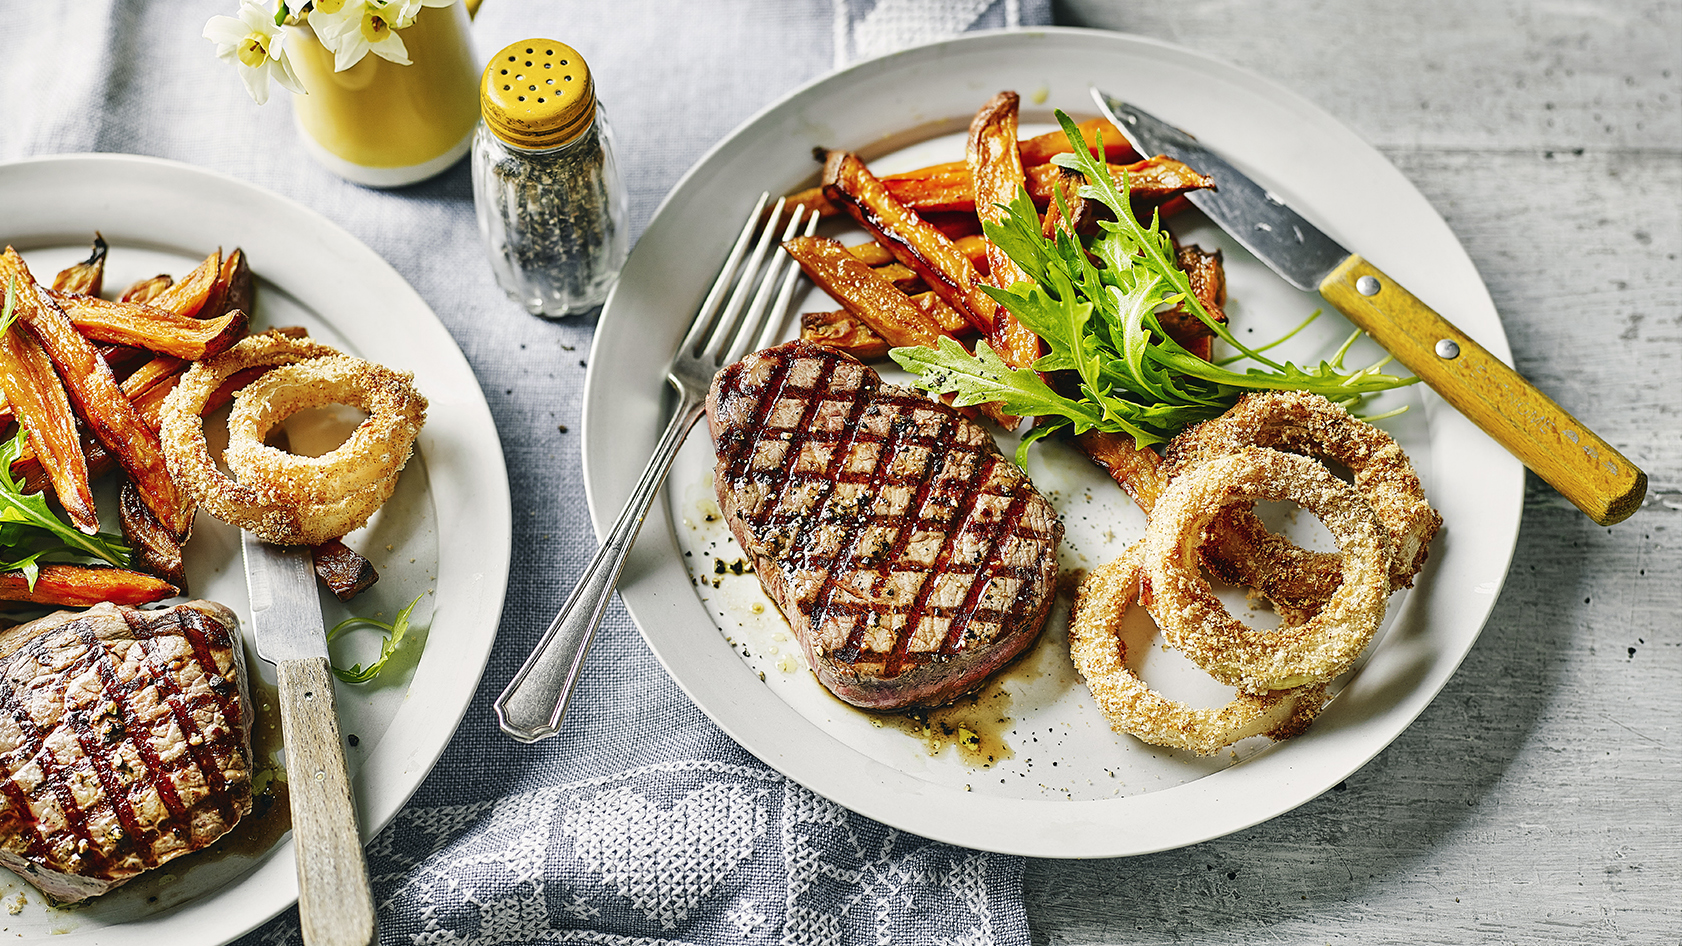 Steak sweet potato fries and baked onion rings recipe bbc food forumfinder Gallery